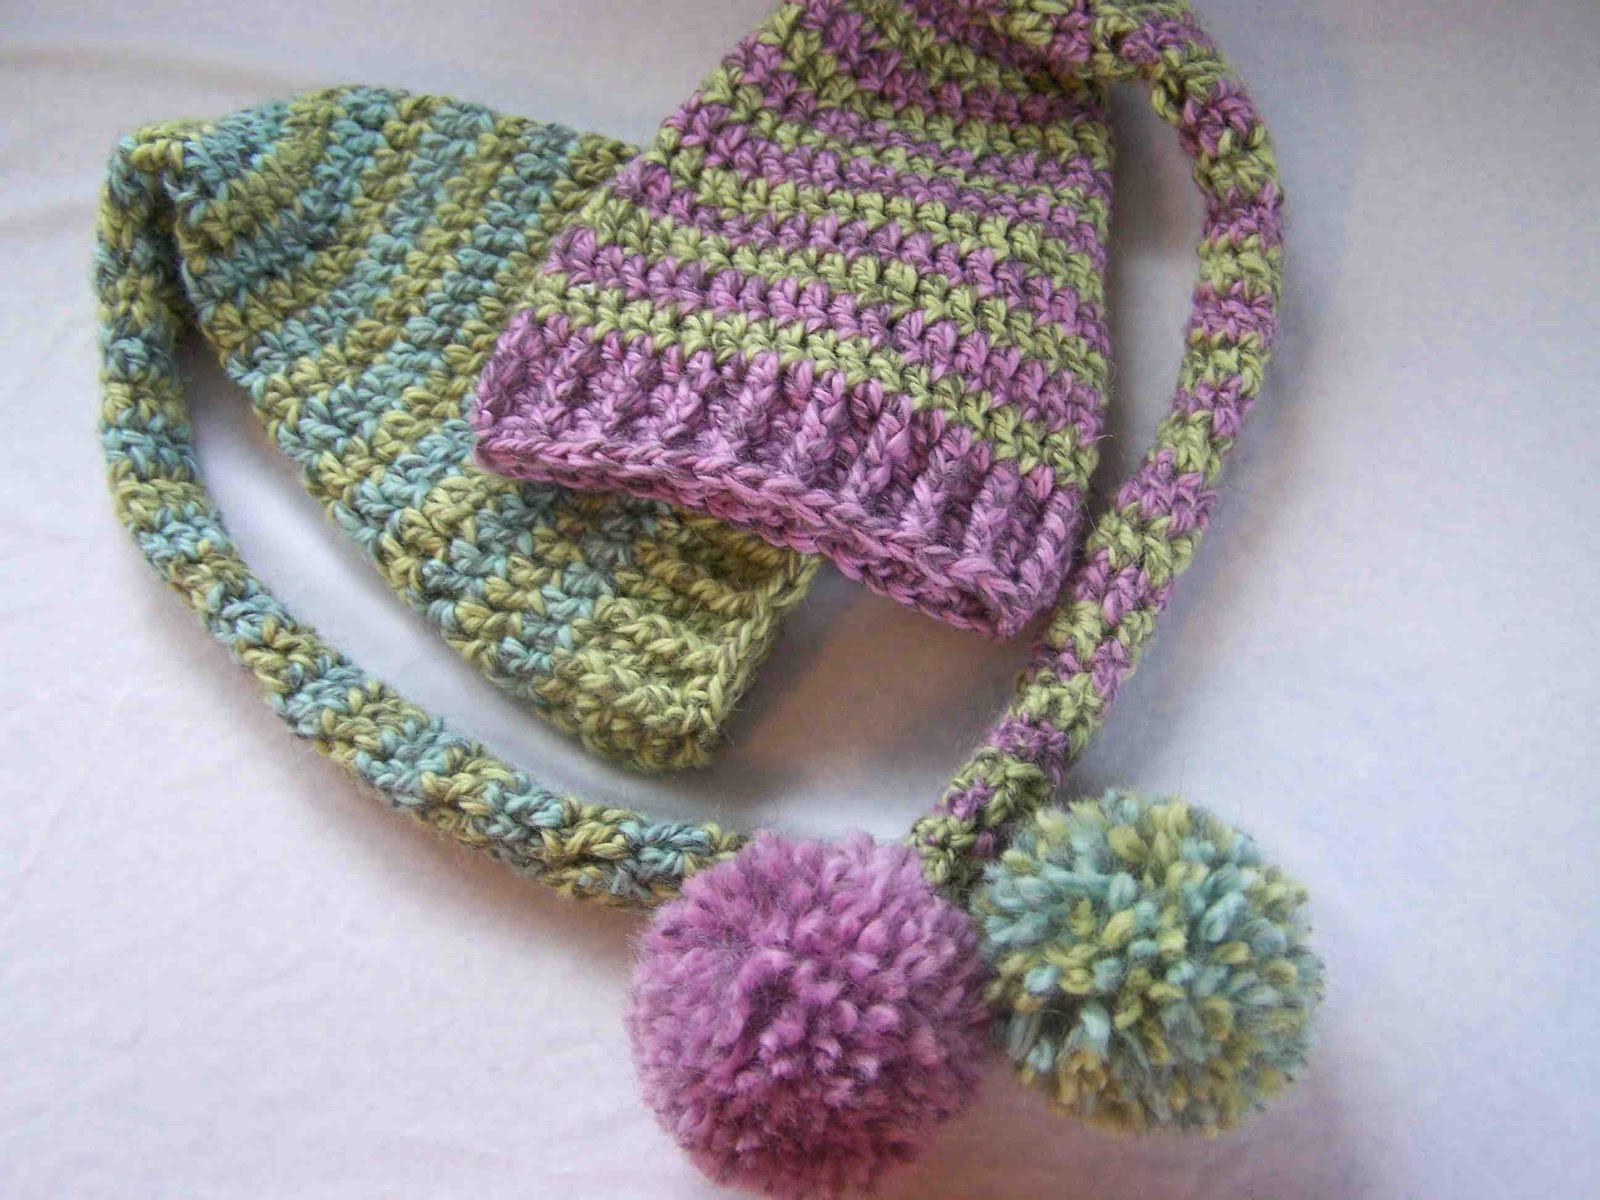 Crochet Patterns for Beginners Luxury Made by Me D with You Beginners Crochet Baby Elf Hats Of Crochet Patterns for Beginners Unique Adult Slippers Crochet Pattern Pdf Easy Great for